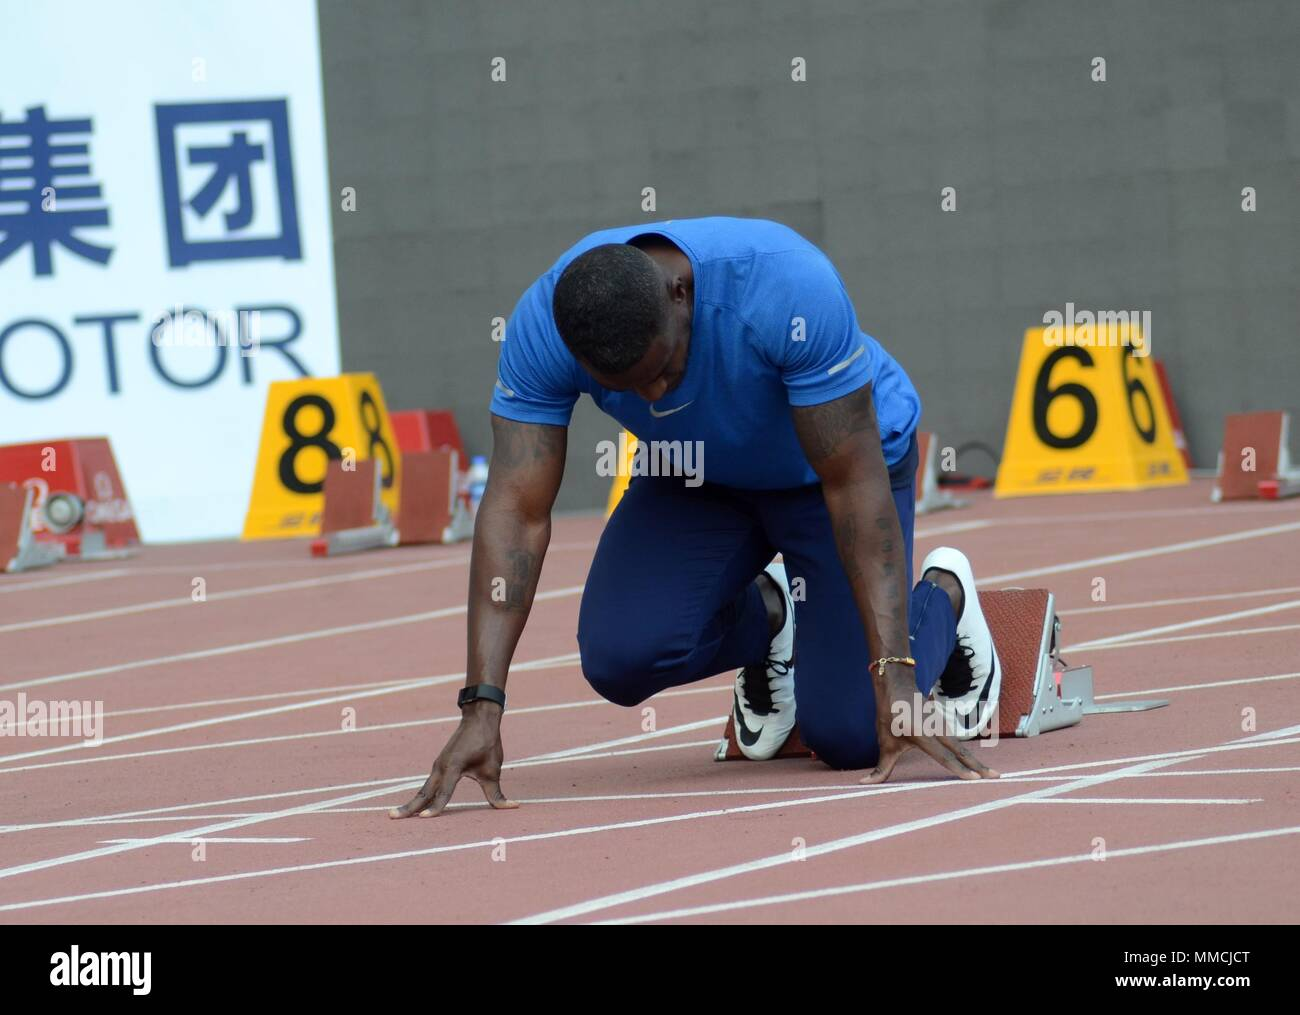 Shanghai, Shanghai, China. 10th May, 2018. Shanghai, CHINA-10th May 2018: American athlete Justin Alexander Gatlin prepares for the upcoming IAAF (International Association of Athletics Federations) Diamond League 2018 in Shanghai, May 10th, 2018. Credit: SIPA Asia/ZUMA Wire/Alamy Live News - Stock Image